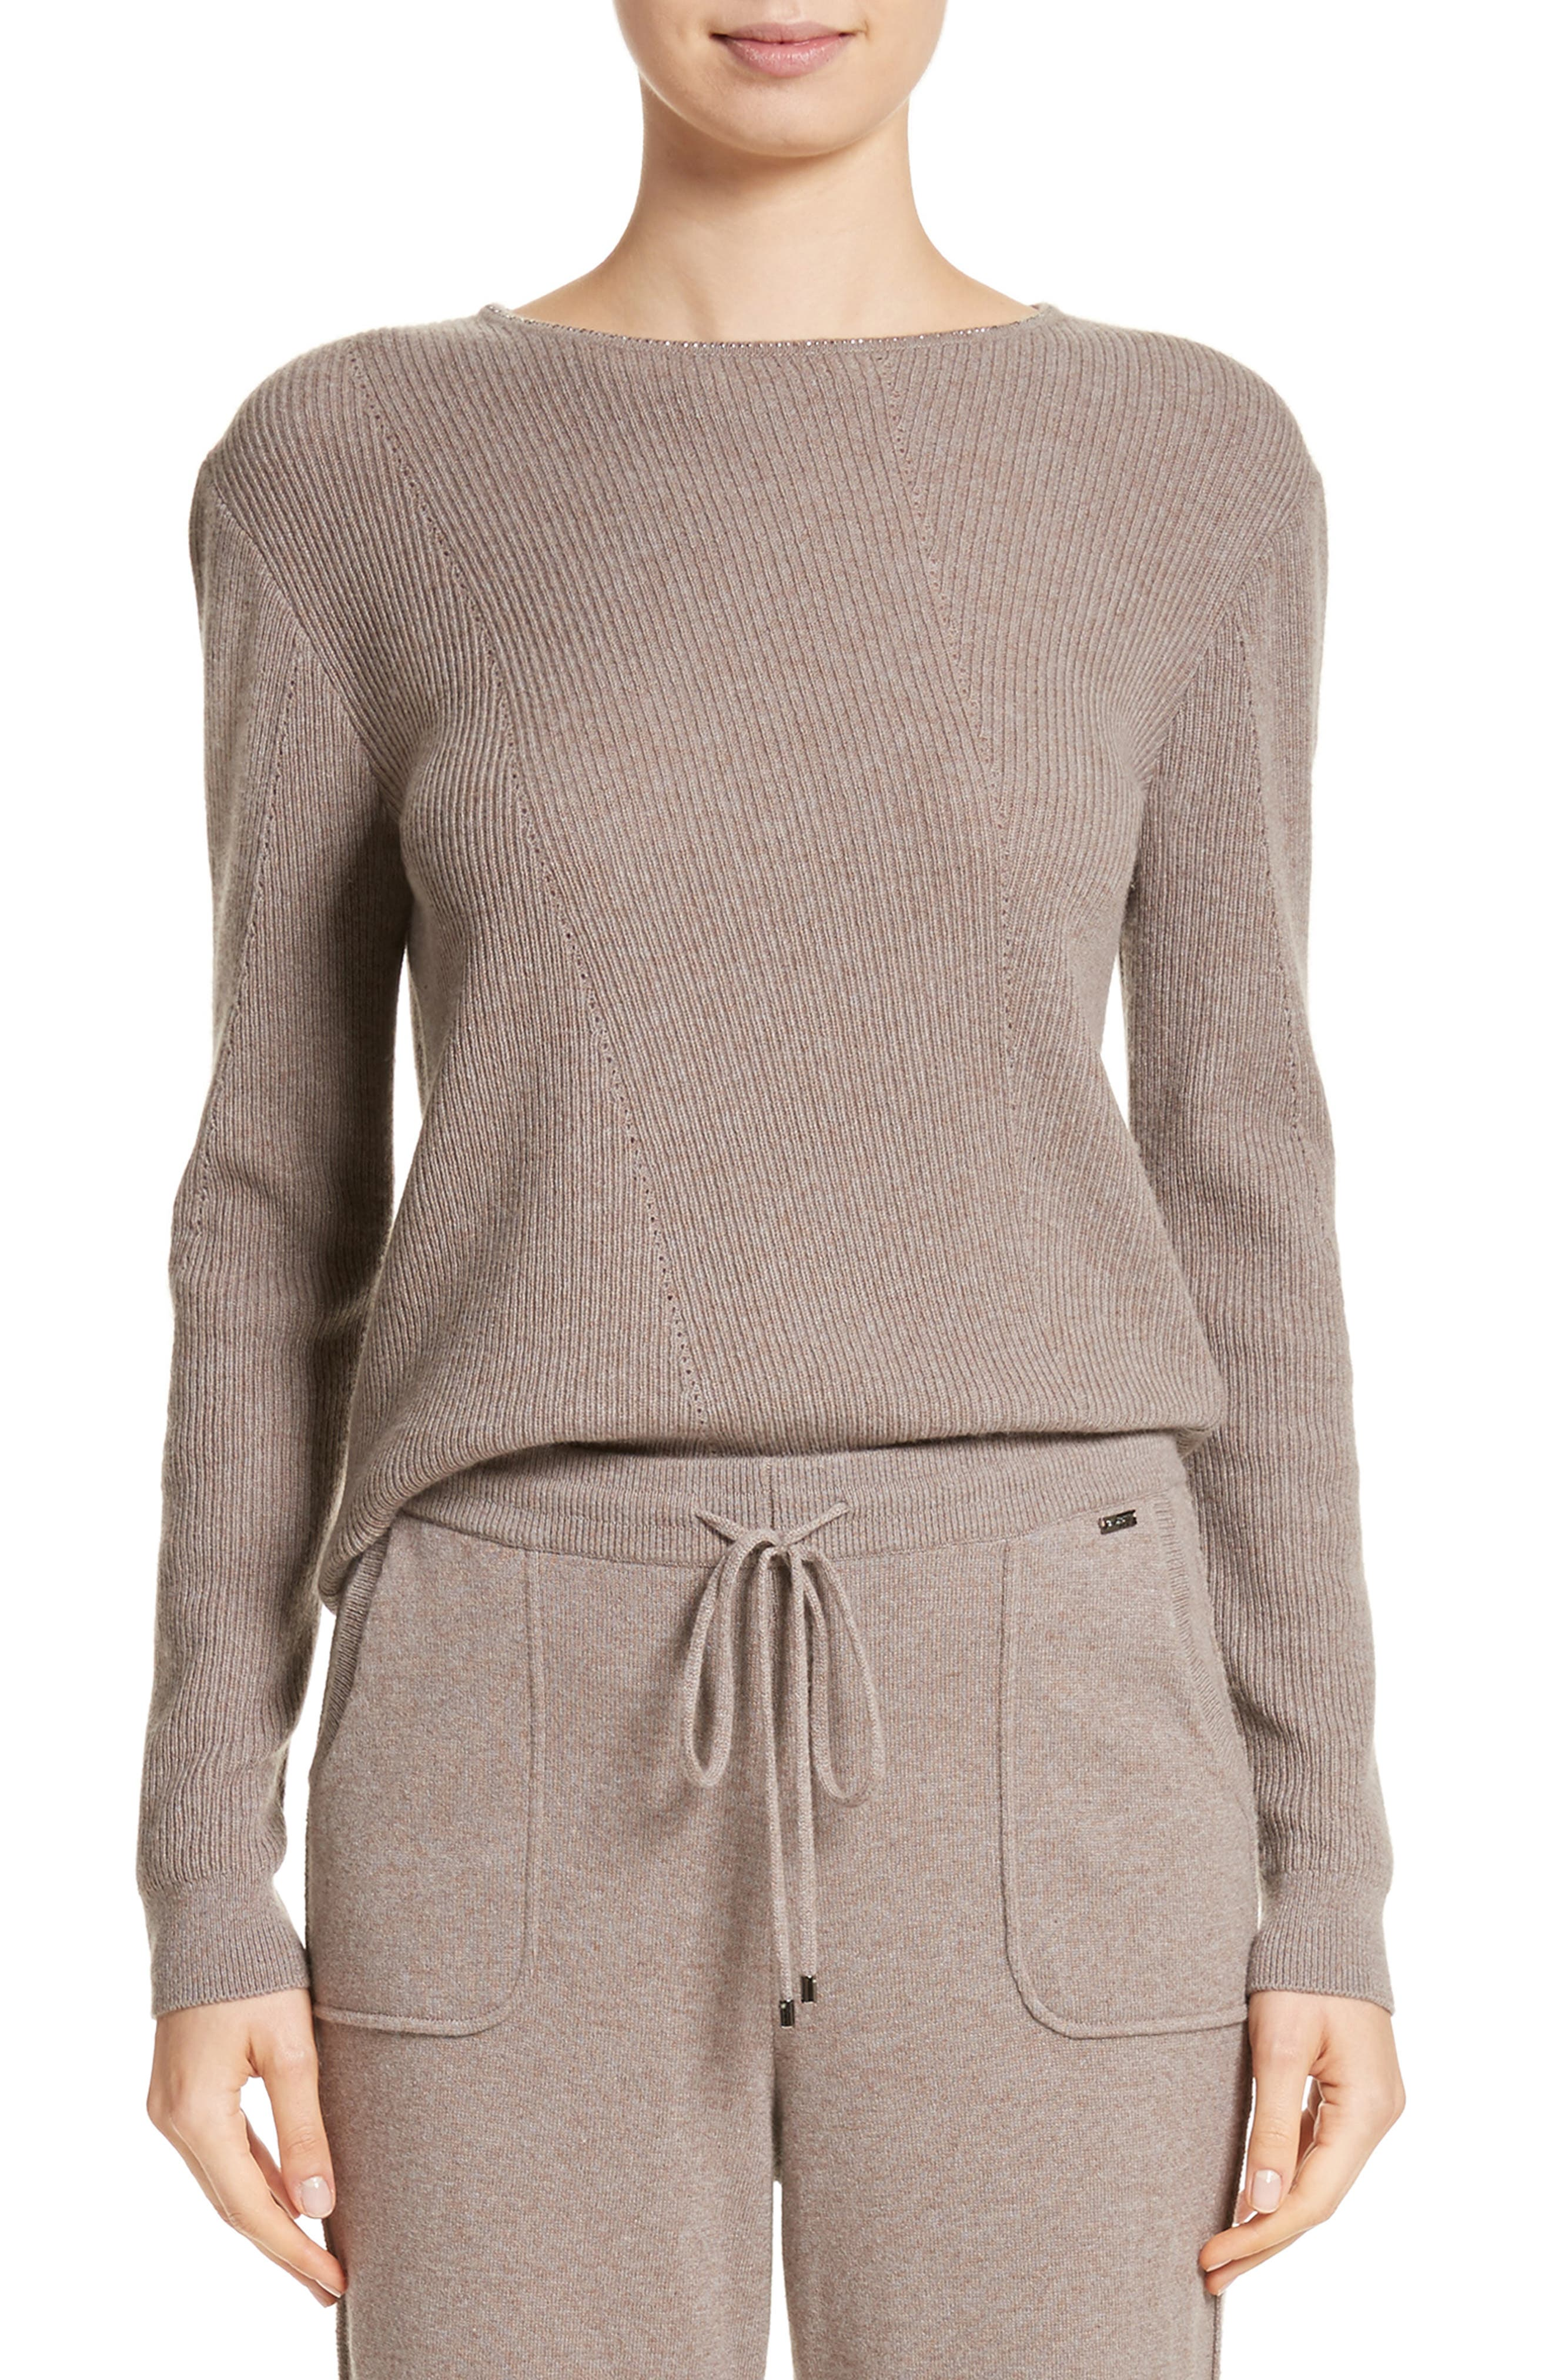 Cashmere Sweater,                         Main,                         color, 030